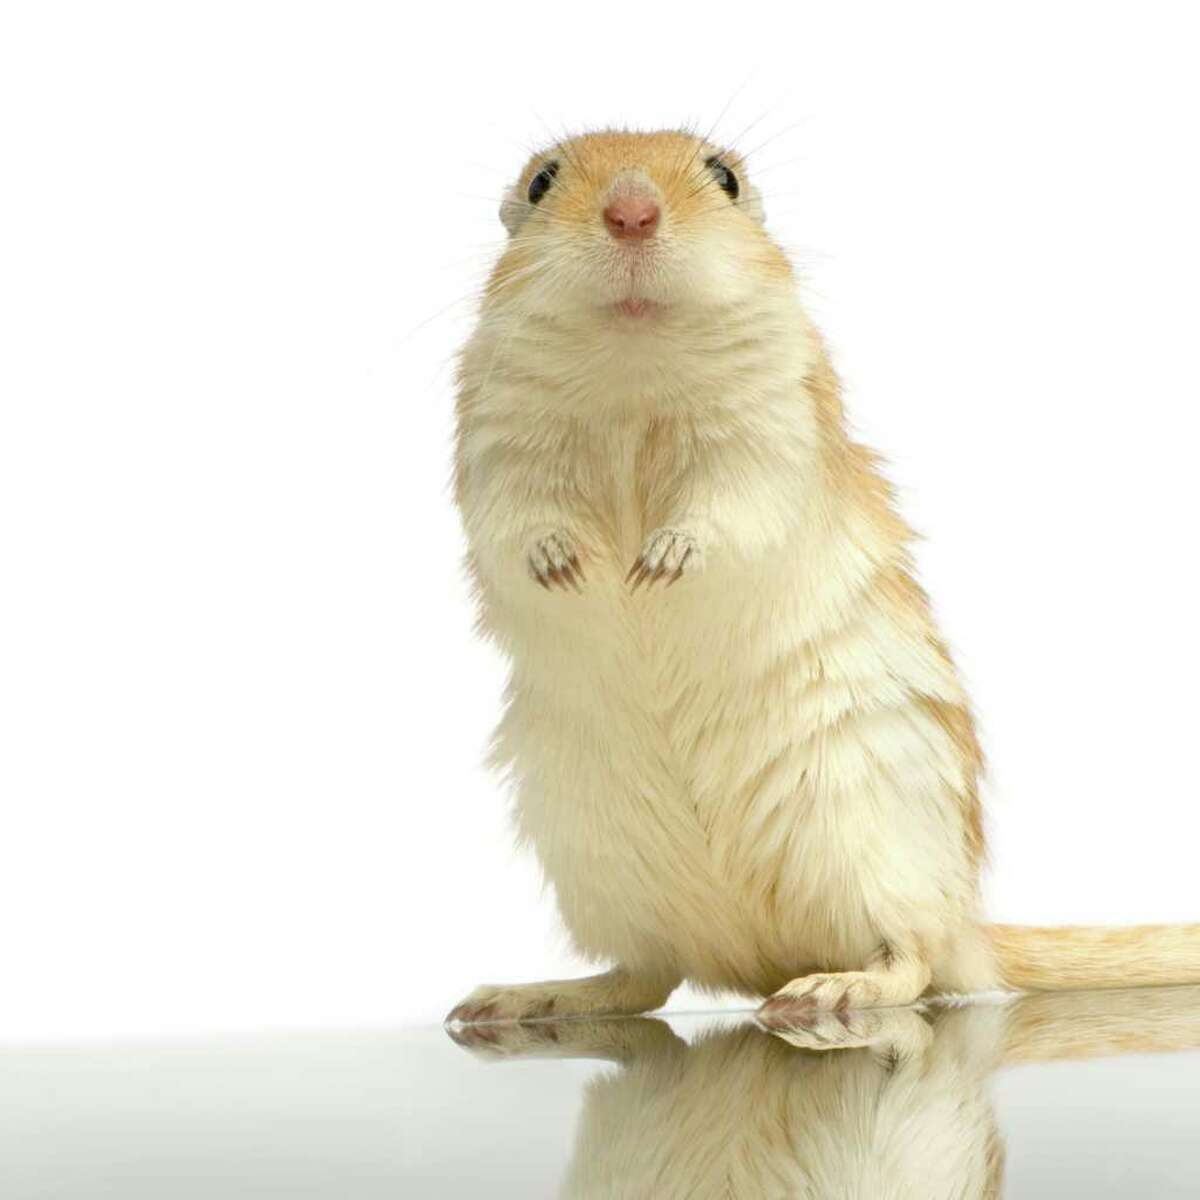 Gerbils need sand bathing to keep their coats from becoming oily.